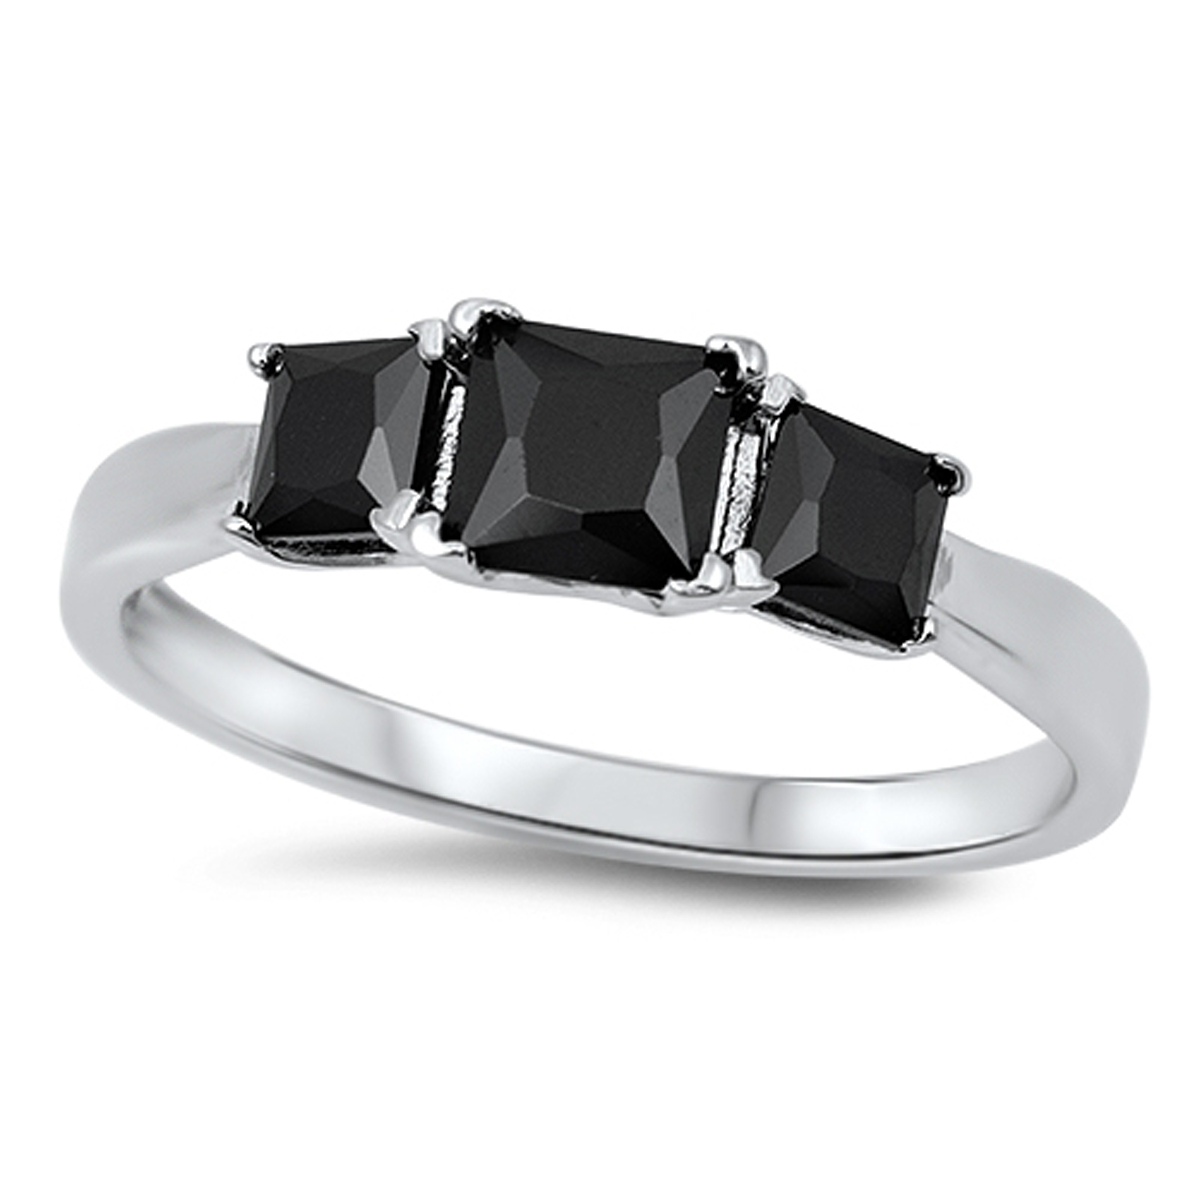 Sterling Silver Women's Flawless Black Cubic Zirconia Triple Square Wedding Ring (Sizes 3-13) (Ring Size 9)